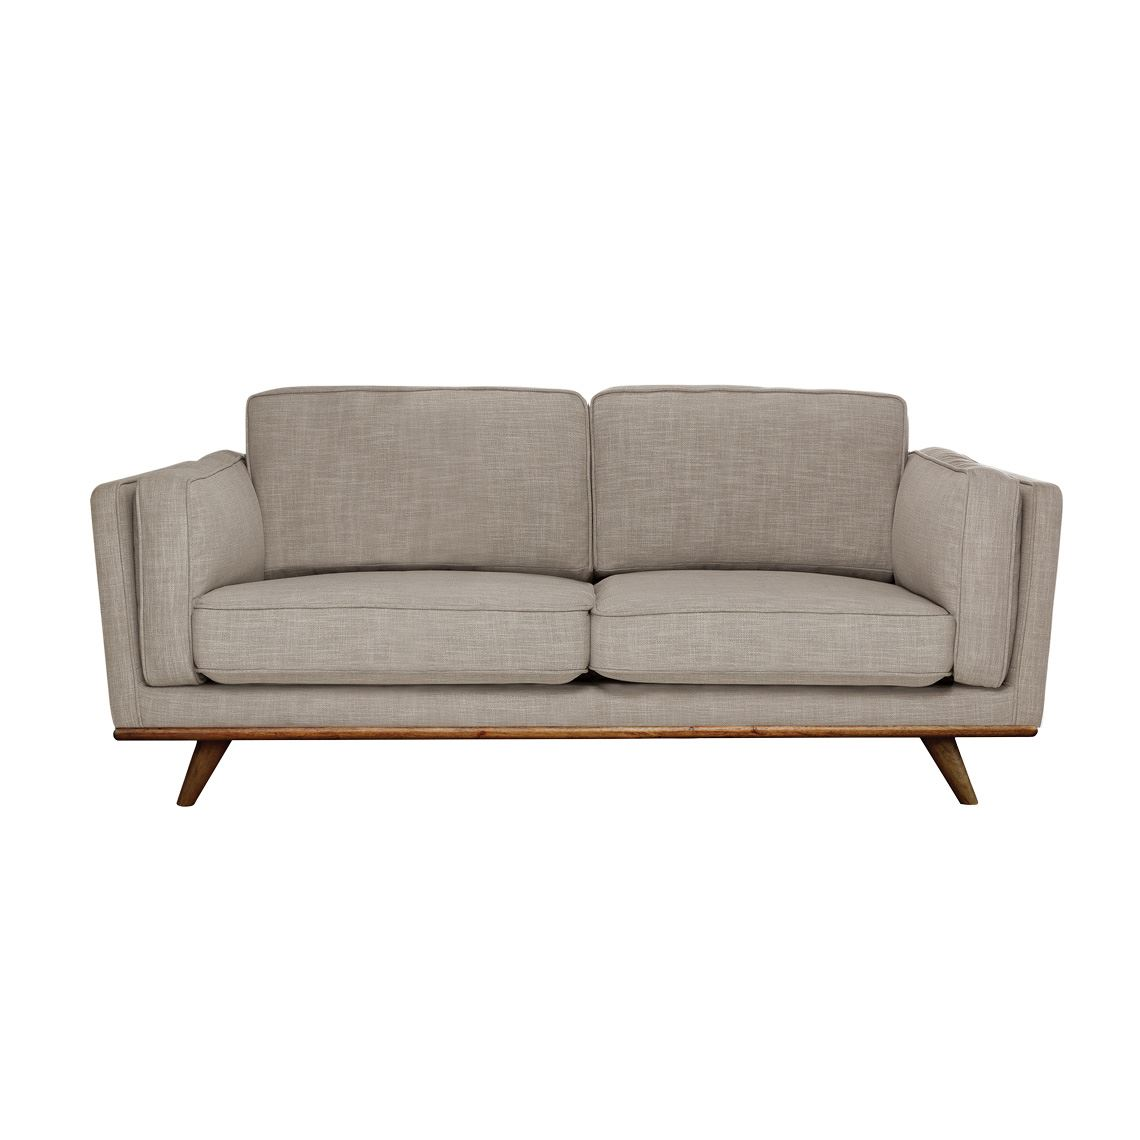 Dahlia 2 Seat Fabric Sofa Size W 166cm x D 93cm x H 82cm in Shell 90% Polyester/10% Linen/Woven Freedom by Freedom, a Sofas for sale on Style Sourcebook